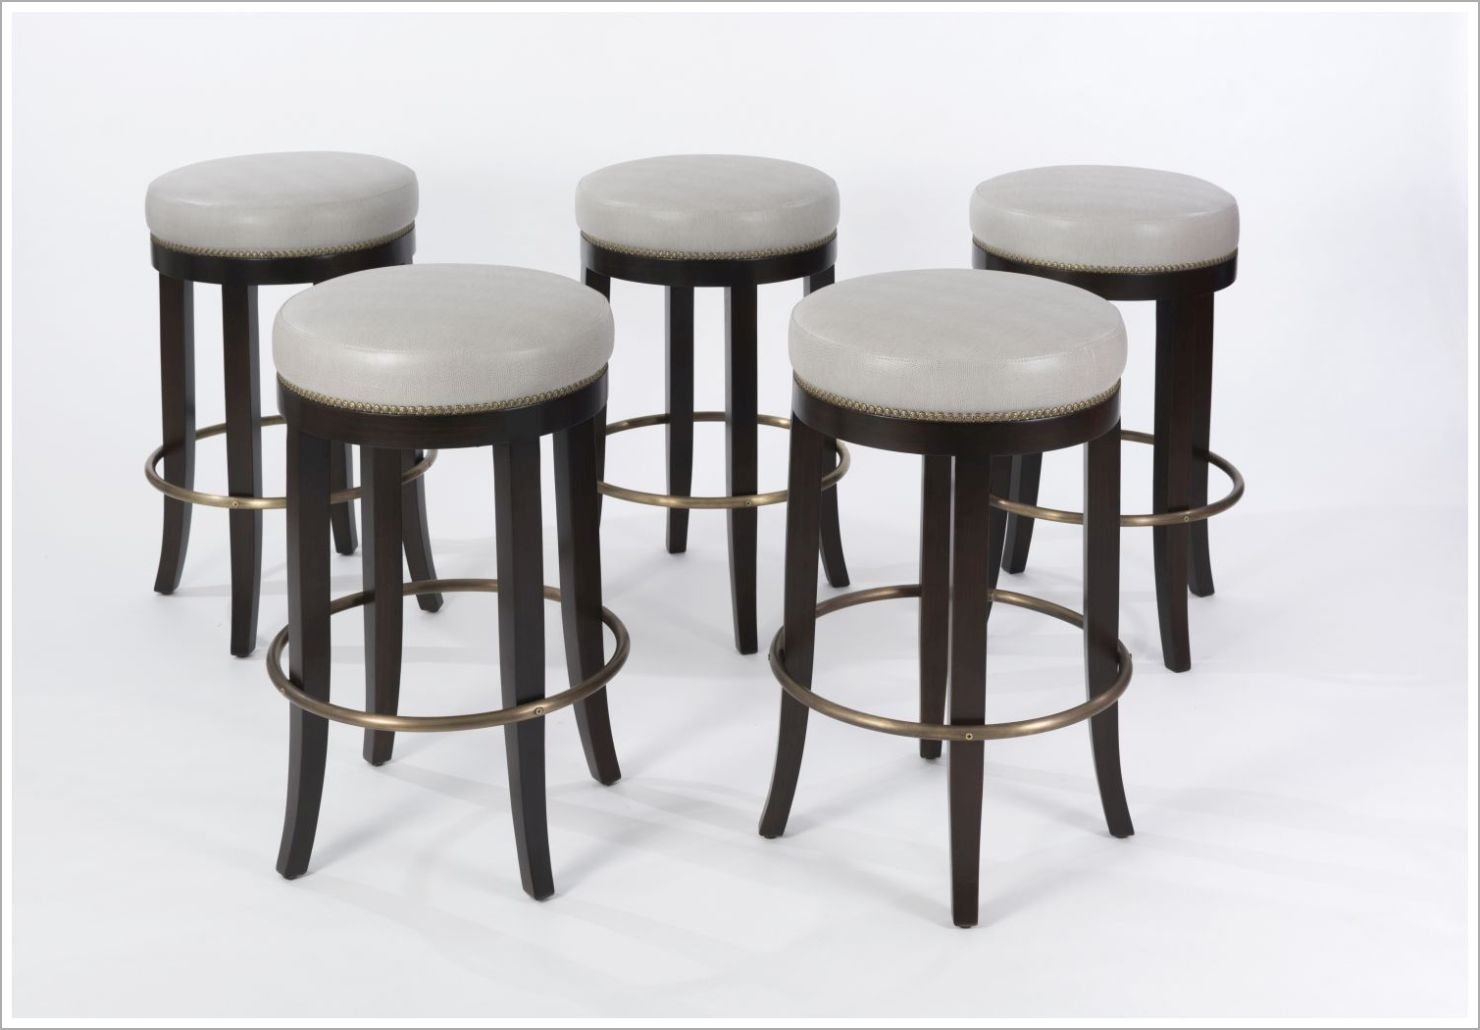 Custom Upholstered Barstools with Brass Footrest